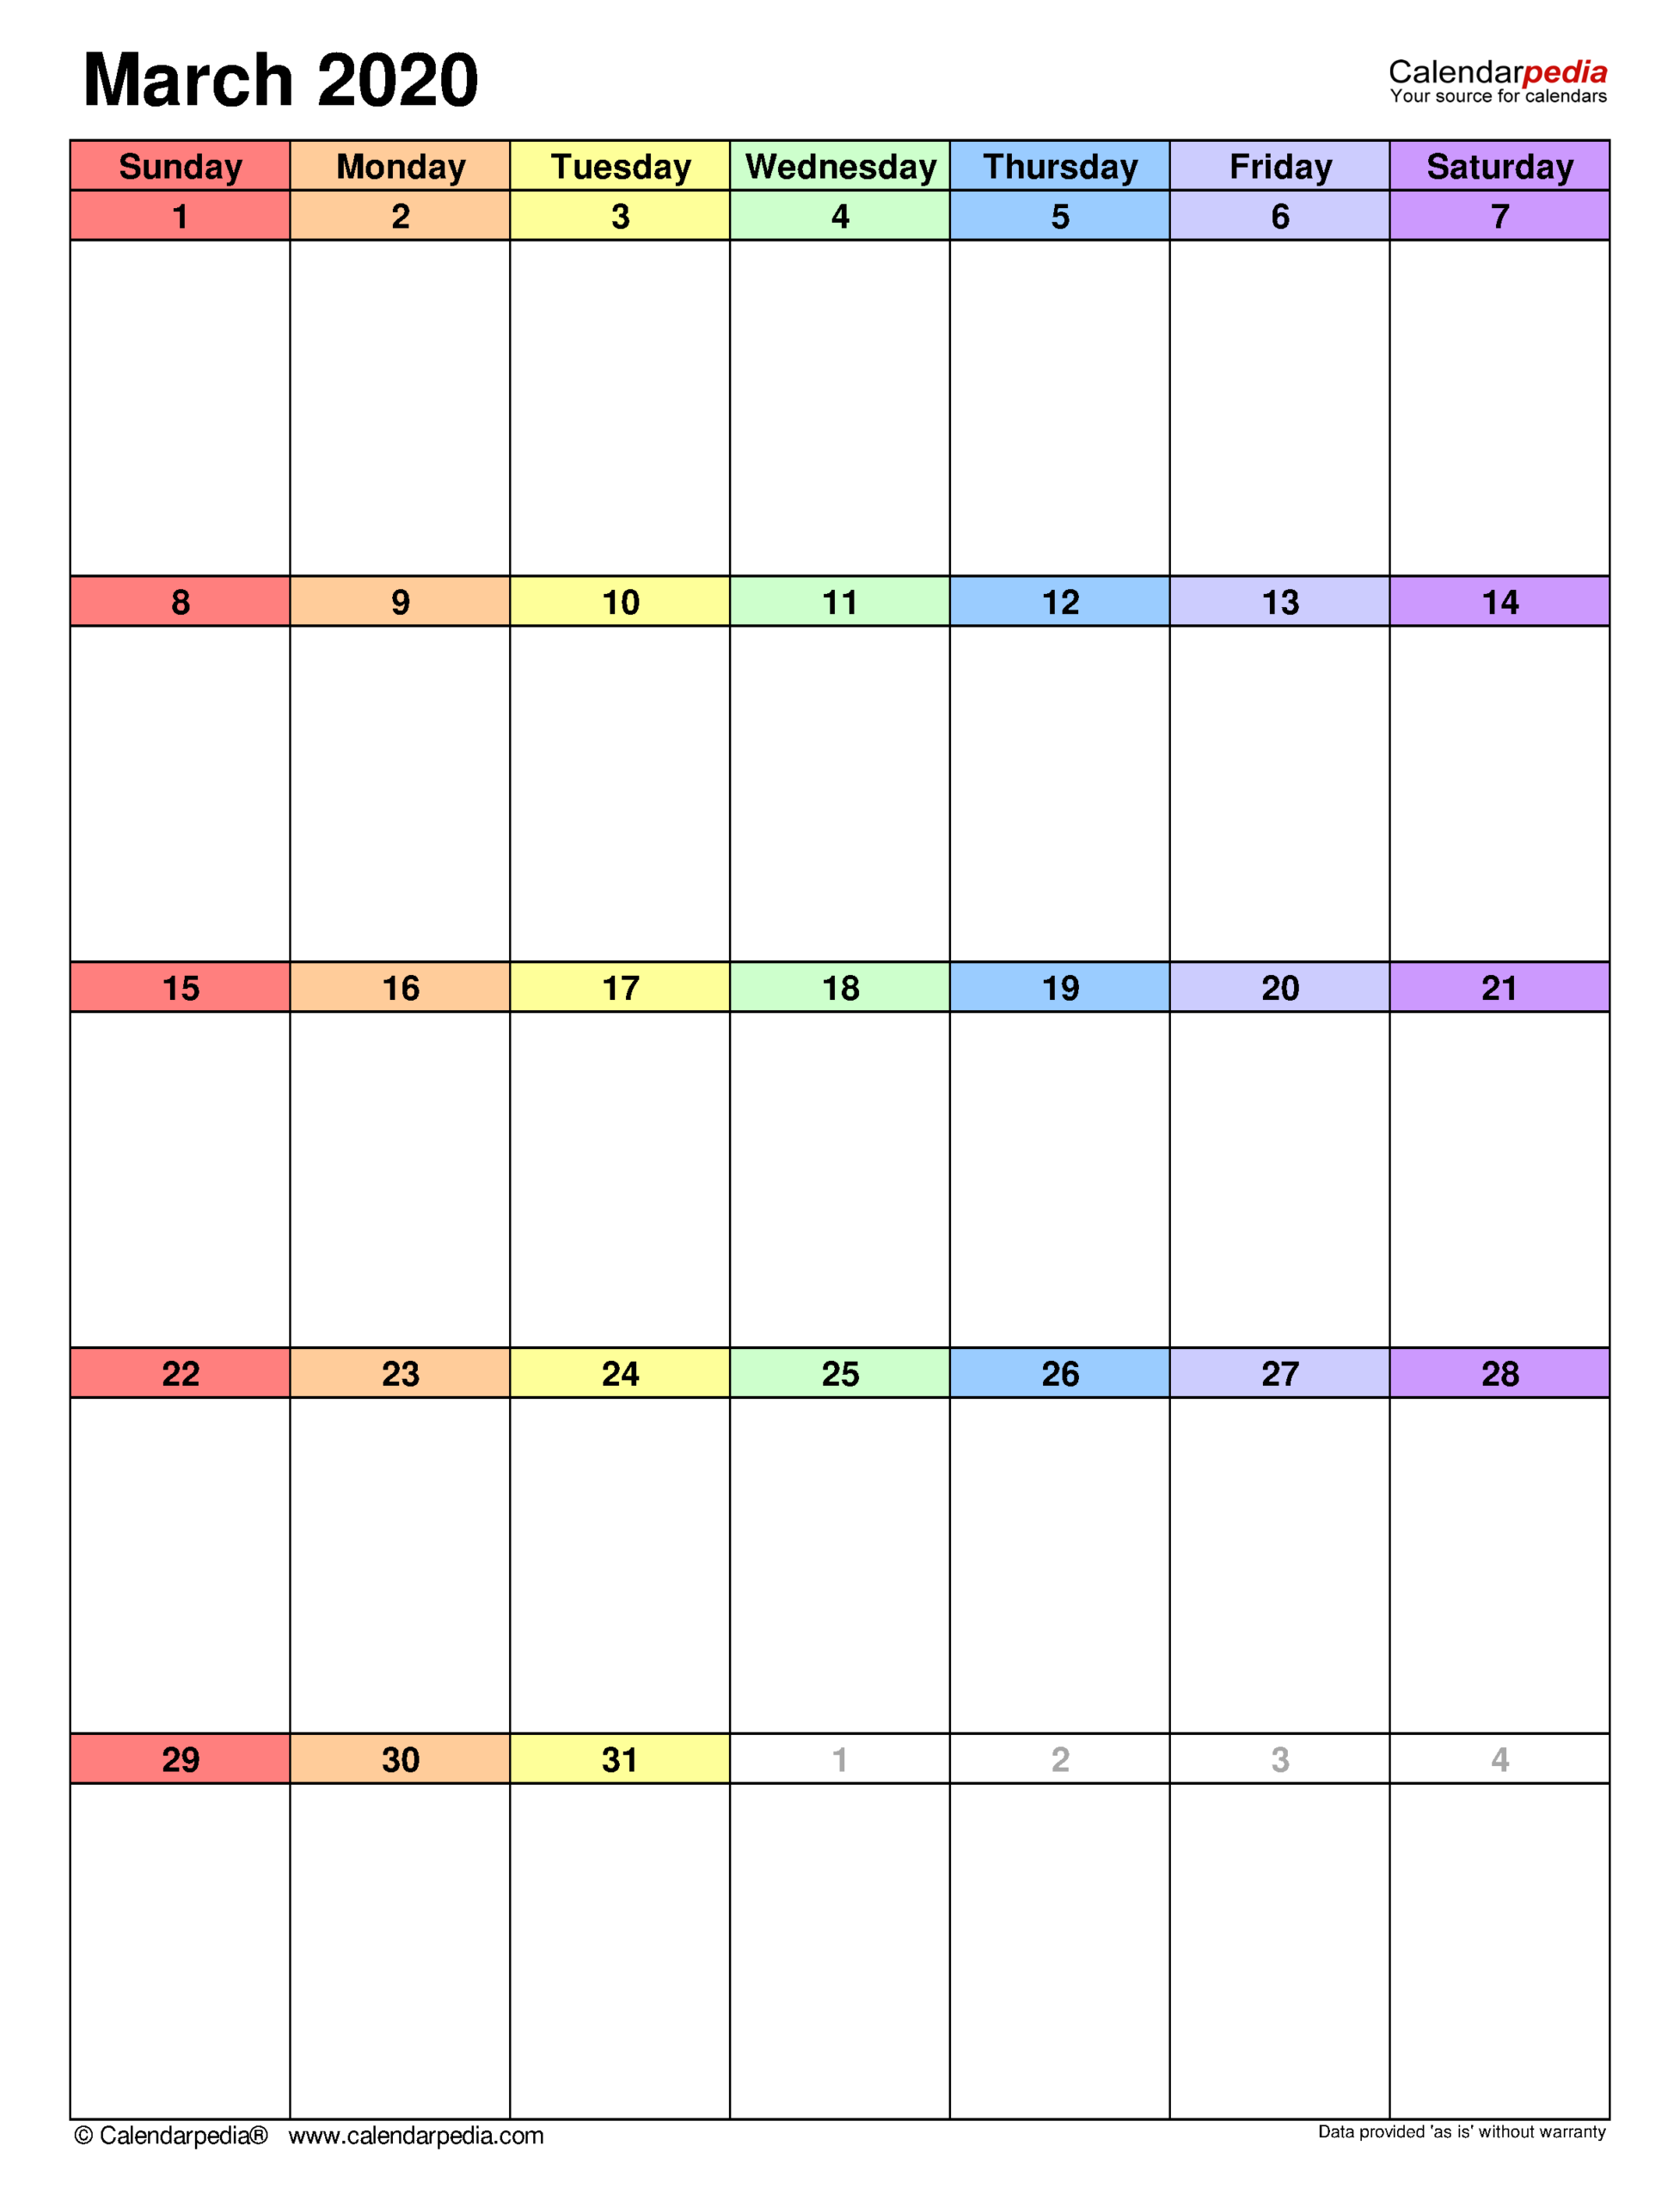 March 2020 Calendar   Templates For Word, Excel And Pdf